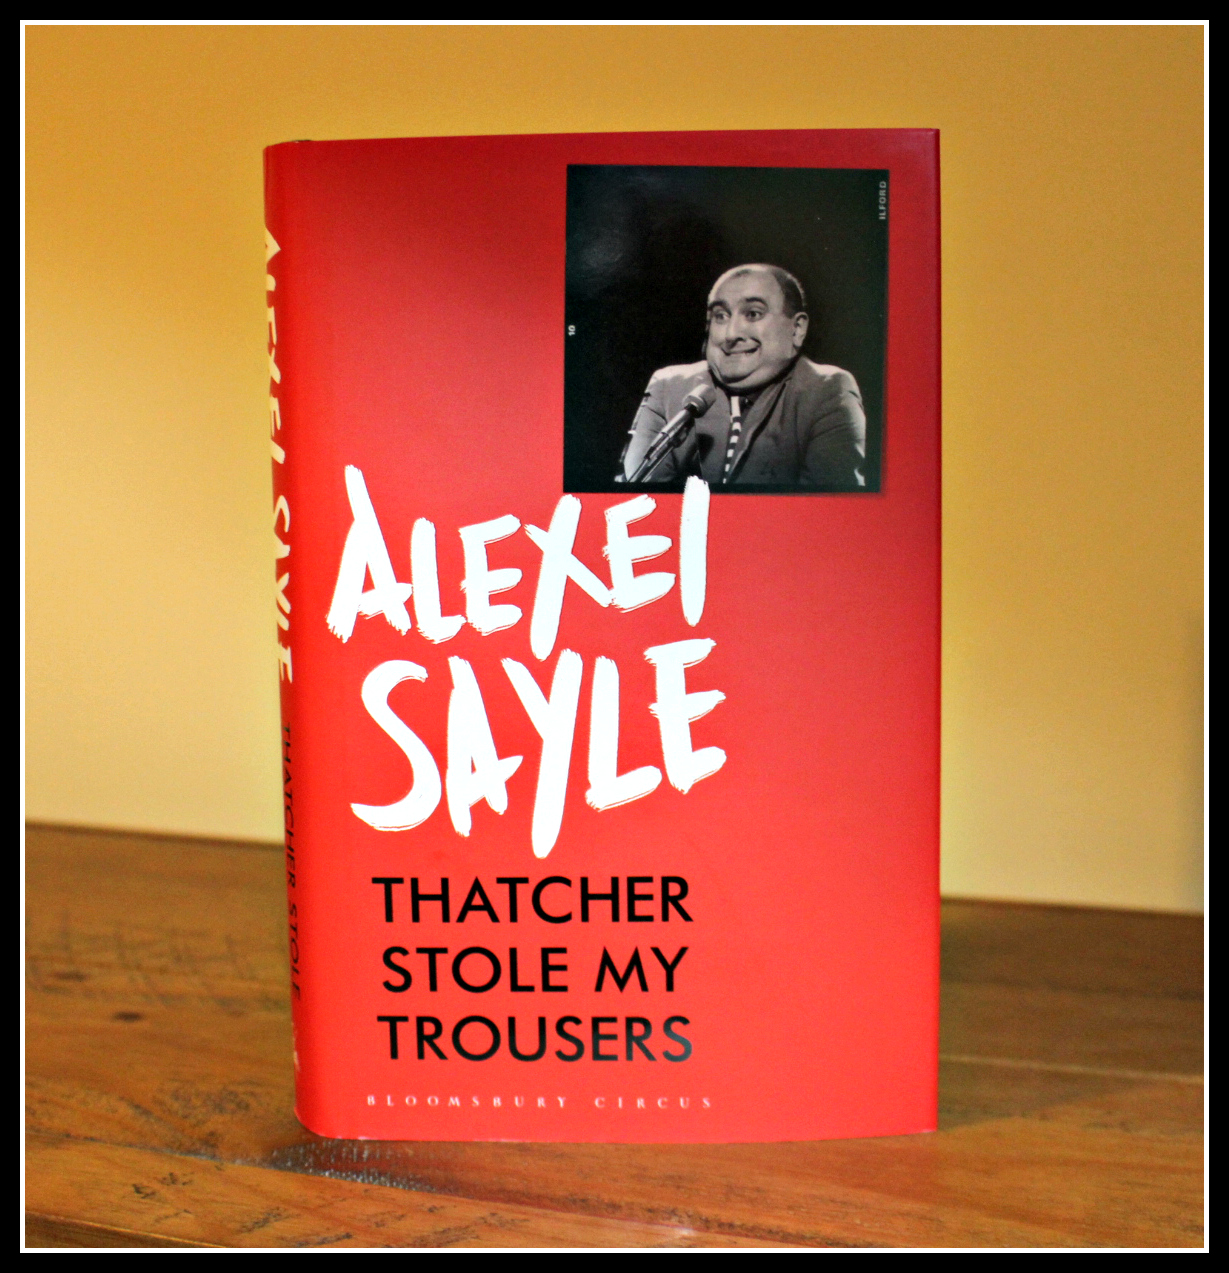 Alexei Sayle, giveaway, competition, books, reading, Thatcher Stole my Trousers, comedian, comedy,